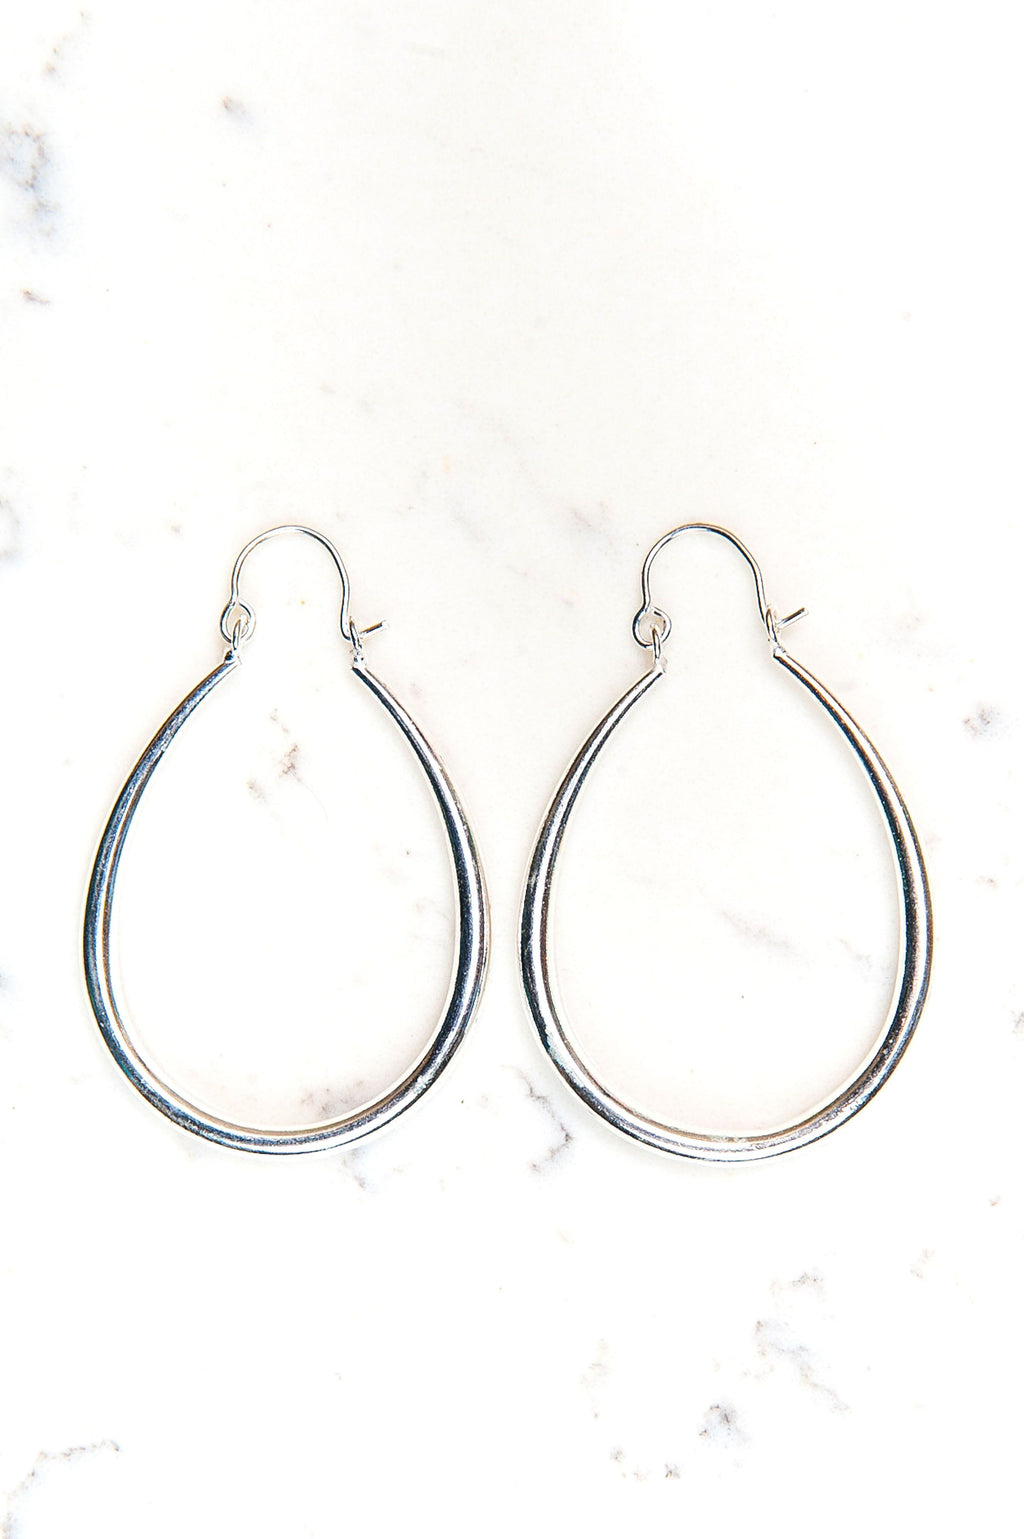 Luxe Hoop Earrings - Silver - Olive Gypsy Boutique